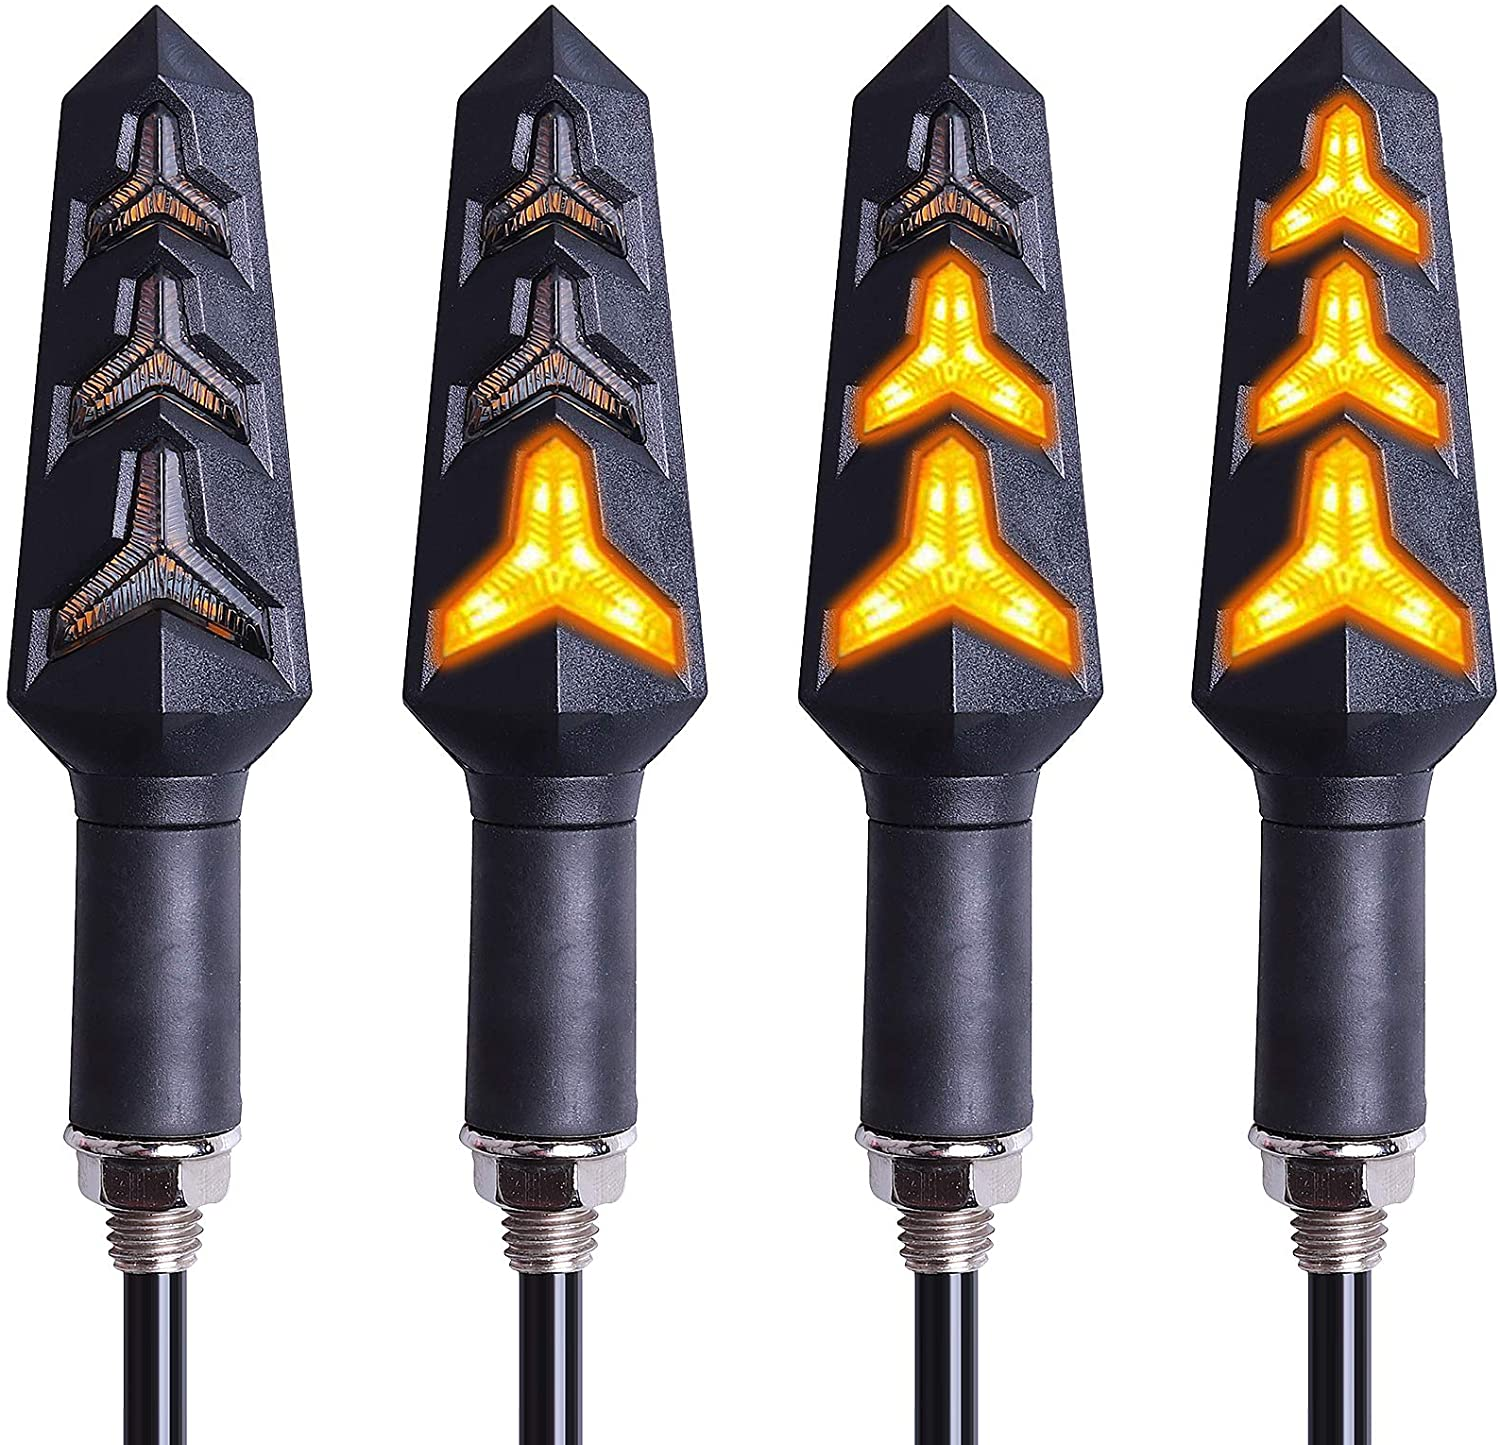 Kinstecks 4PCS Motorcycle Indicators Flowing Turn Signal Lights Motorbike Turning Indicators 12V 12 LEDs Bulbs for Motorcycle Motorbike Scooter Quad Cruiser Off Road-Y Shape